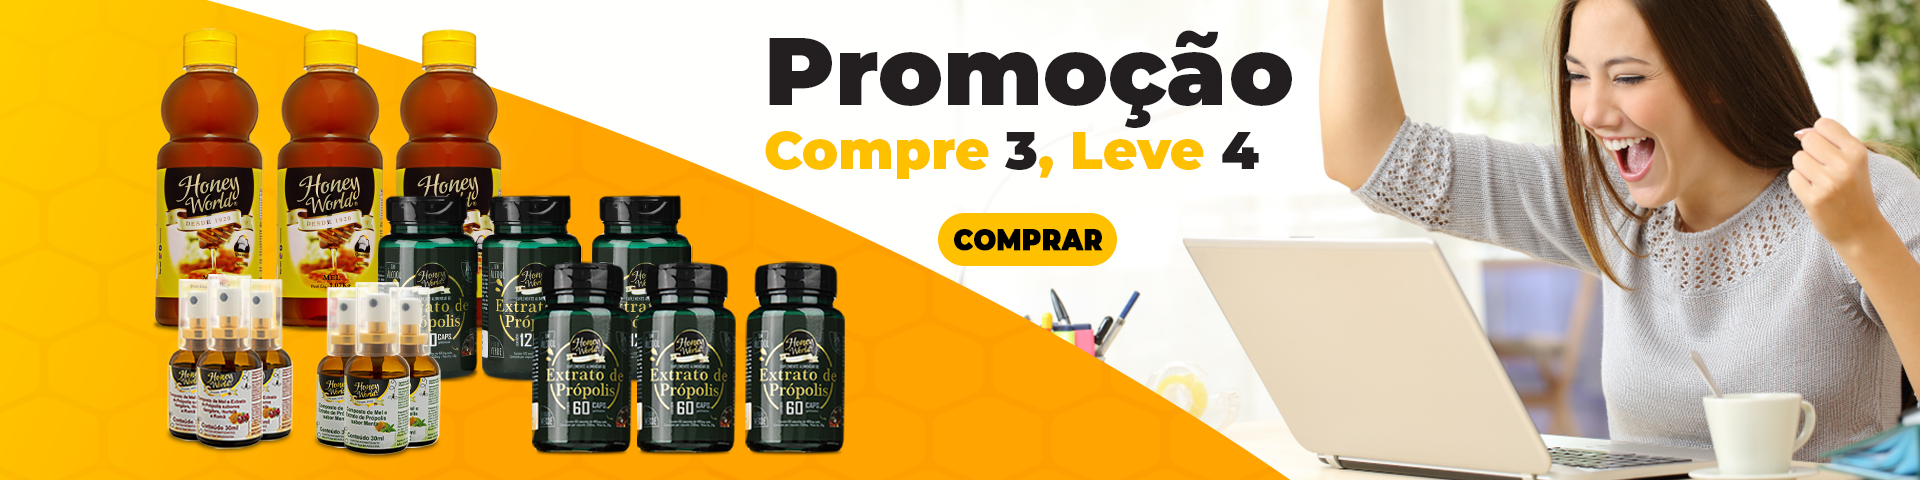 Compre 3, Leve 4